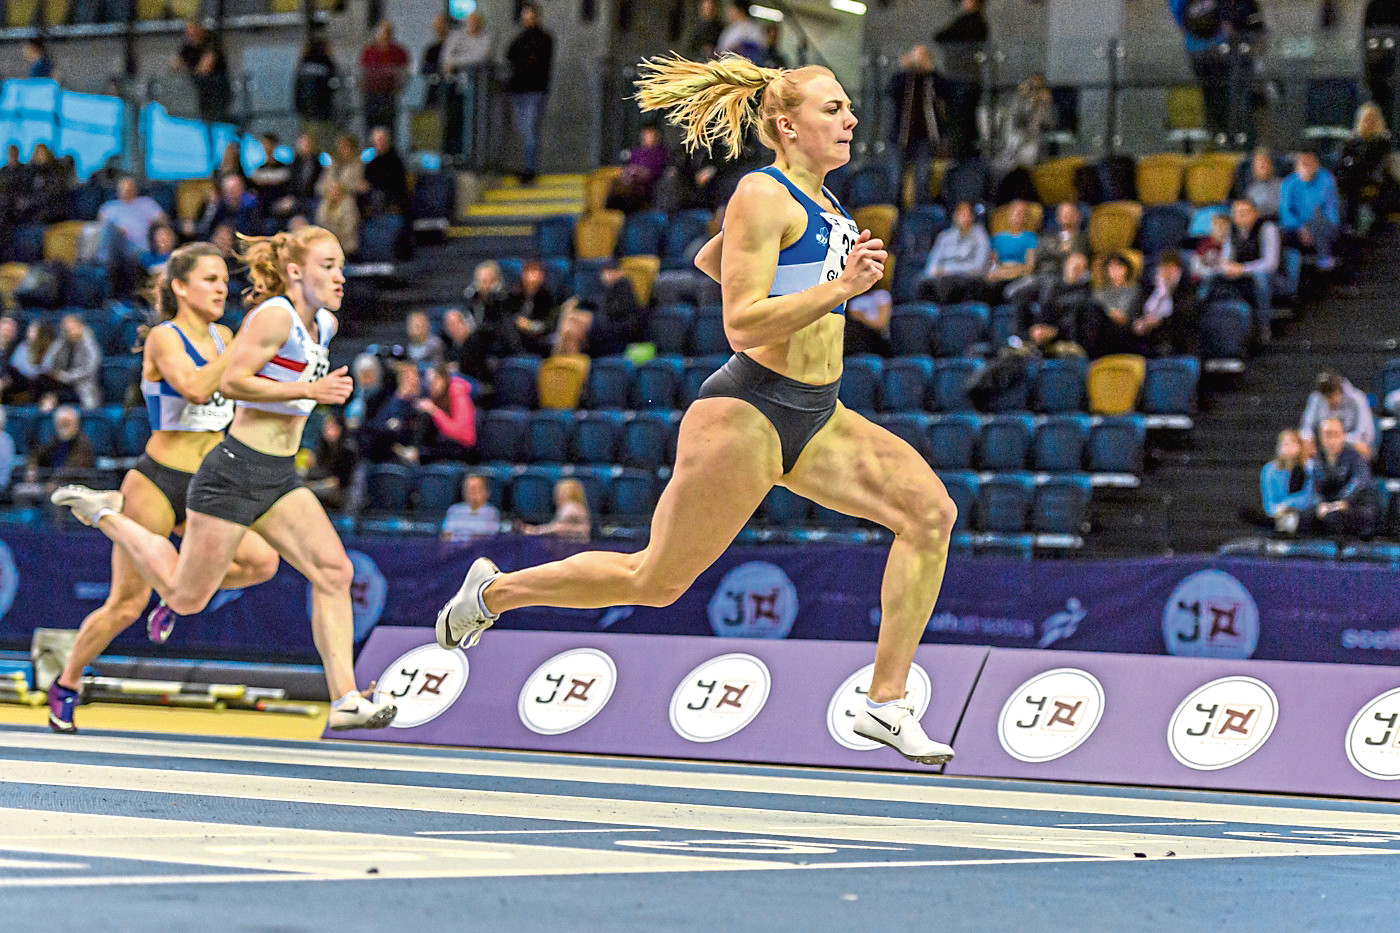 Alisha Rees believes she has an outside chance of being part of the Team GB squad for the Olympics.